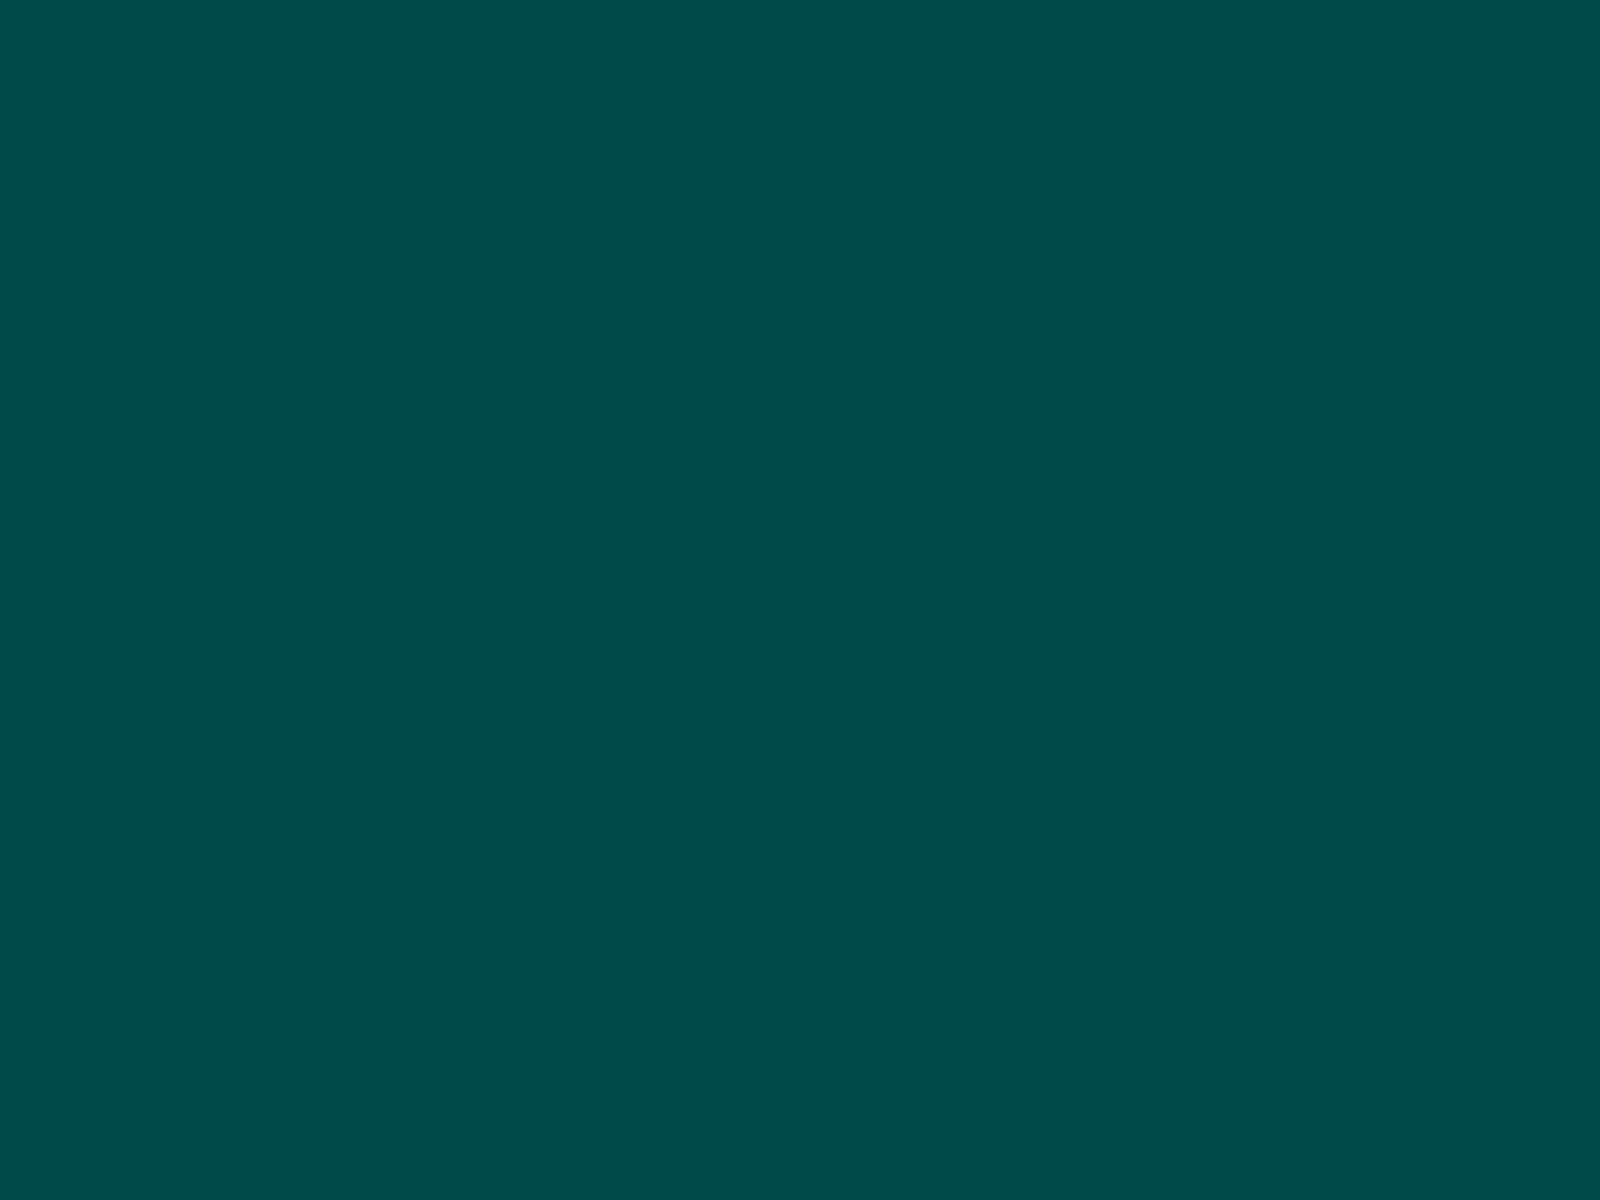 1600x1200 Deep Jungle Green Solid Color Background